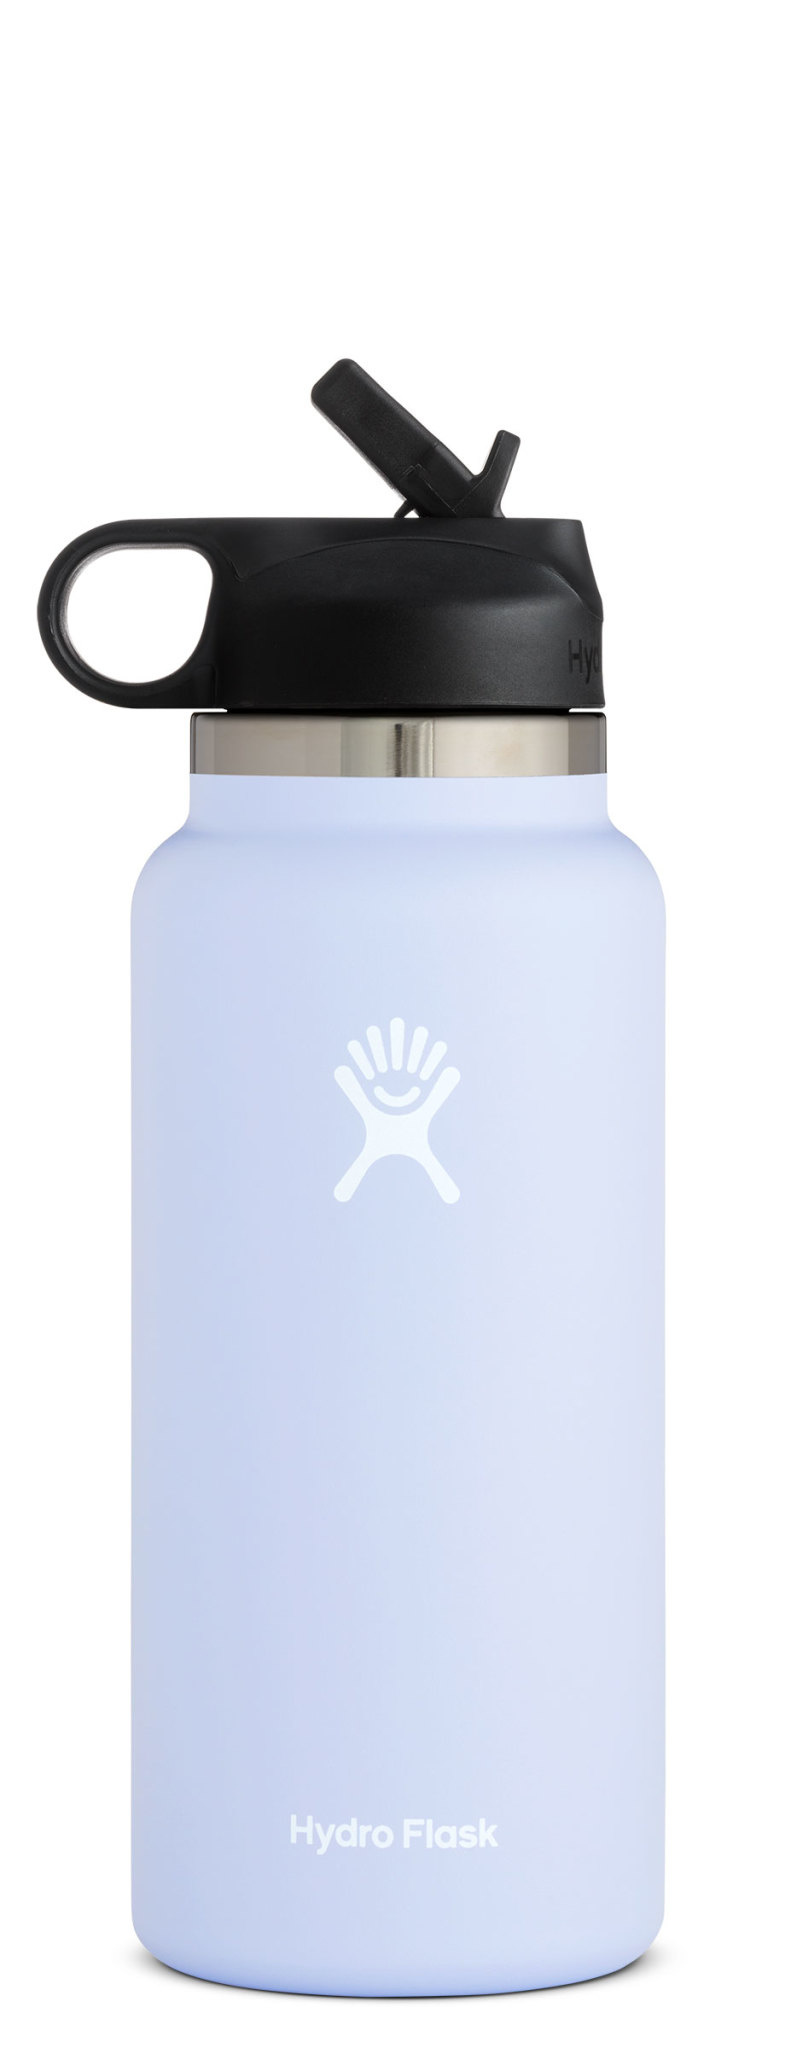 Hydro Flask 32oz Wide Mouth with Straw Lid-6